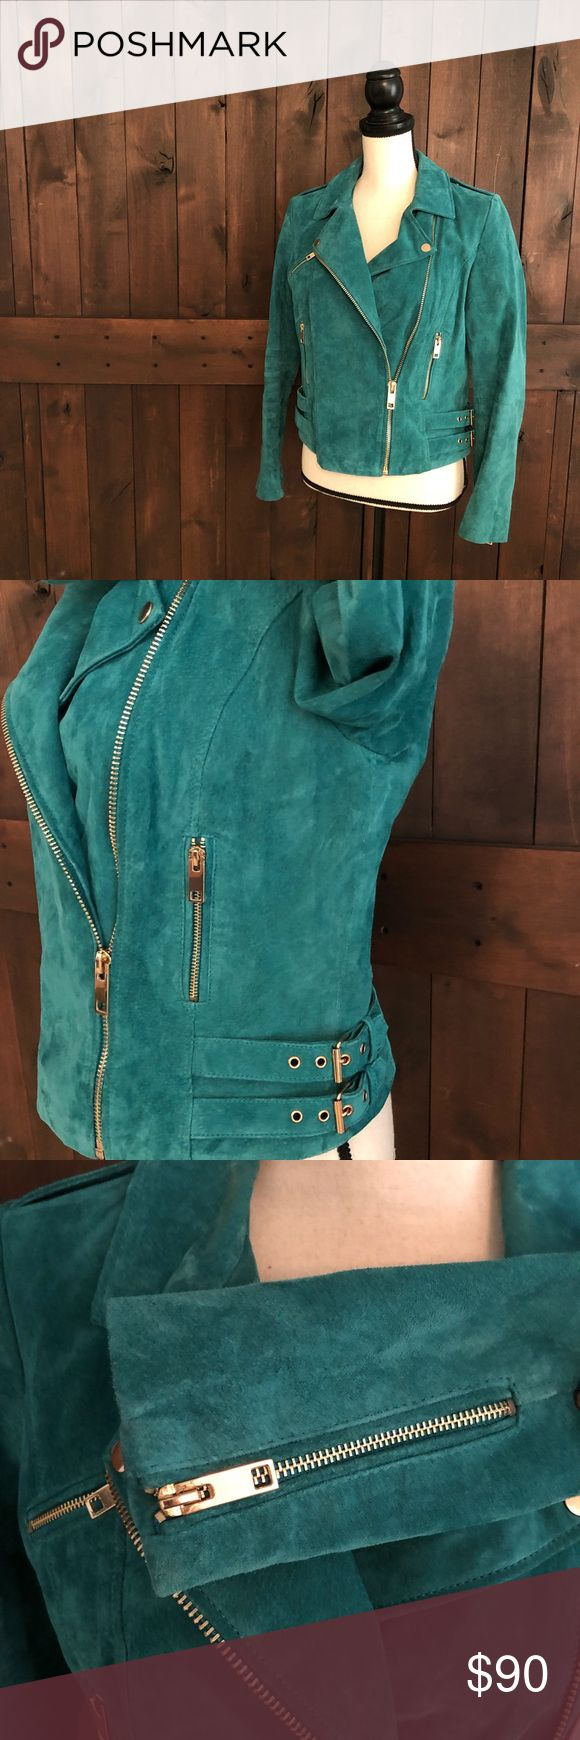 "MANGO Teal Leather Moto Jacket Excellent condition, lightly worn twice and well cared for, 100% pork leather exterior (feels somewhat like suede), fully lined 100% poly, pale gold hardware, zippers at hips, chest and center, snaps at shoulder, double buckles on sides, zippers on sleeves.  Sleeve: 23"" Chest: 18"" flat Length: 21.5"" Mango Jackets & Coats"